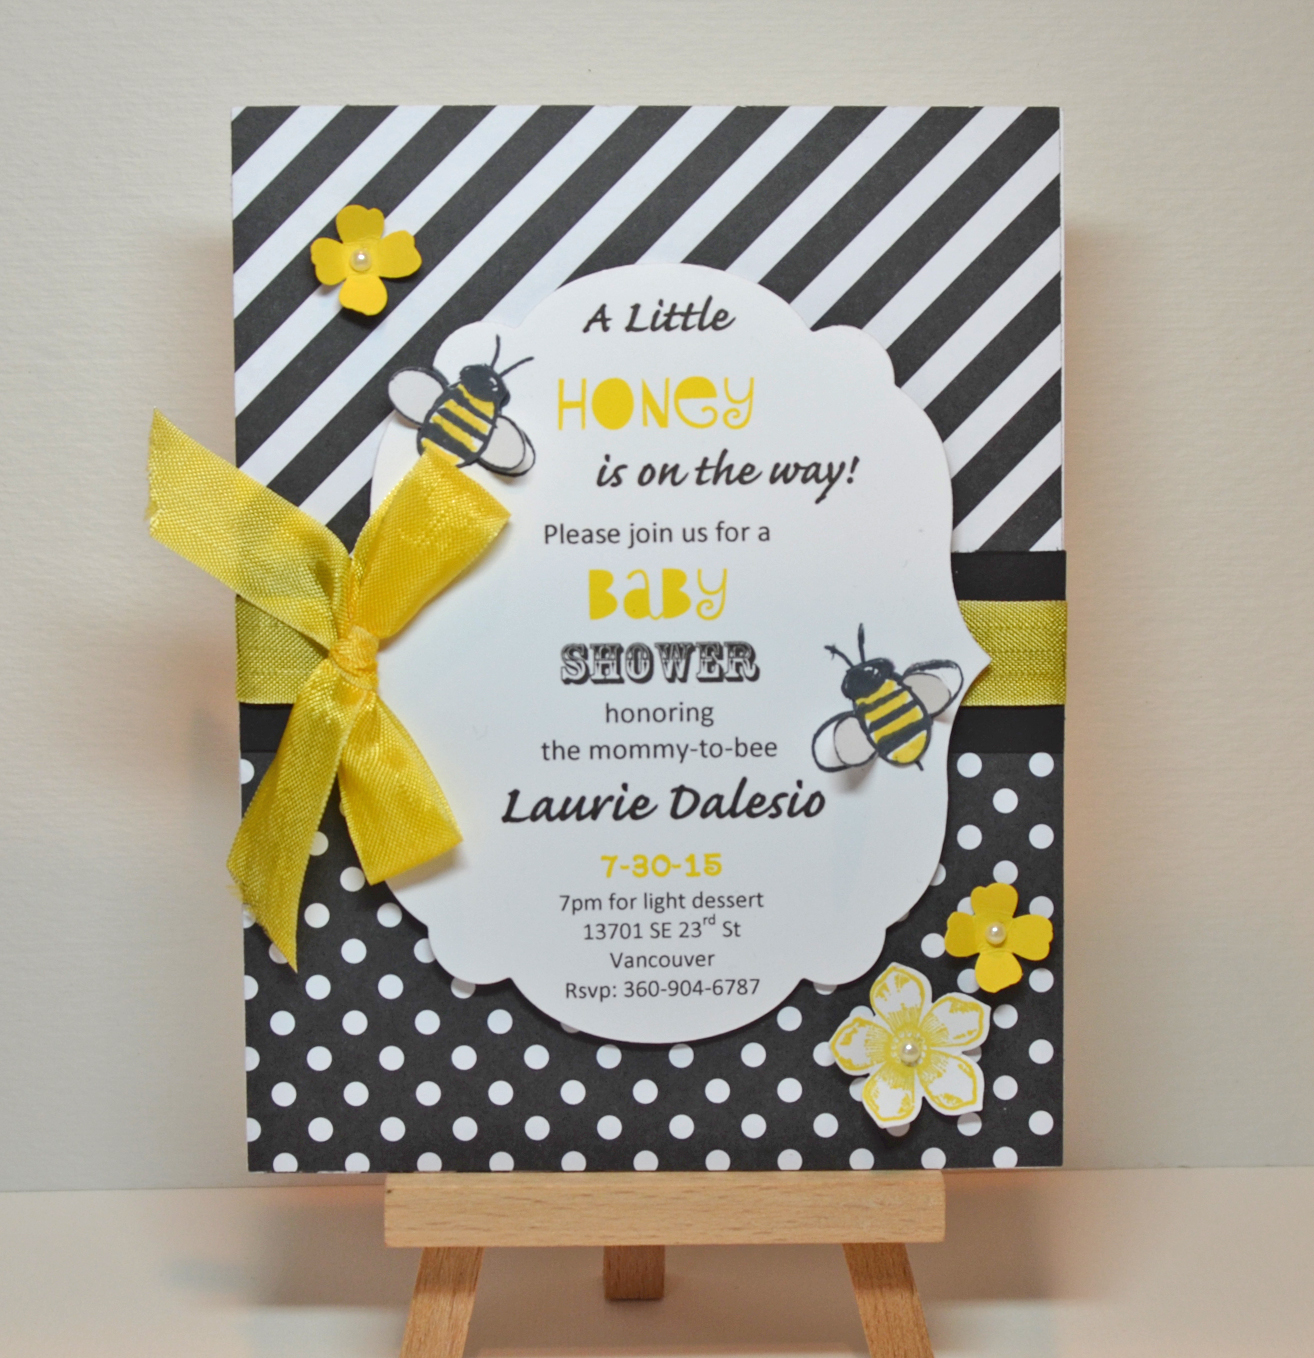 Stampin Up Garden in Bloom Baby Shower Invitation - Stamping With Kristi